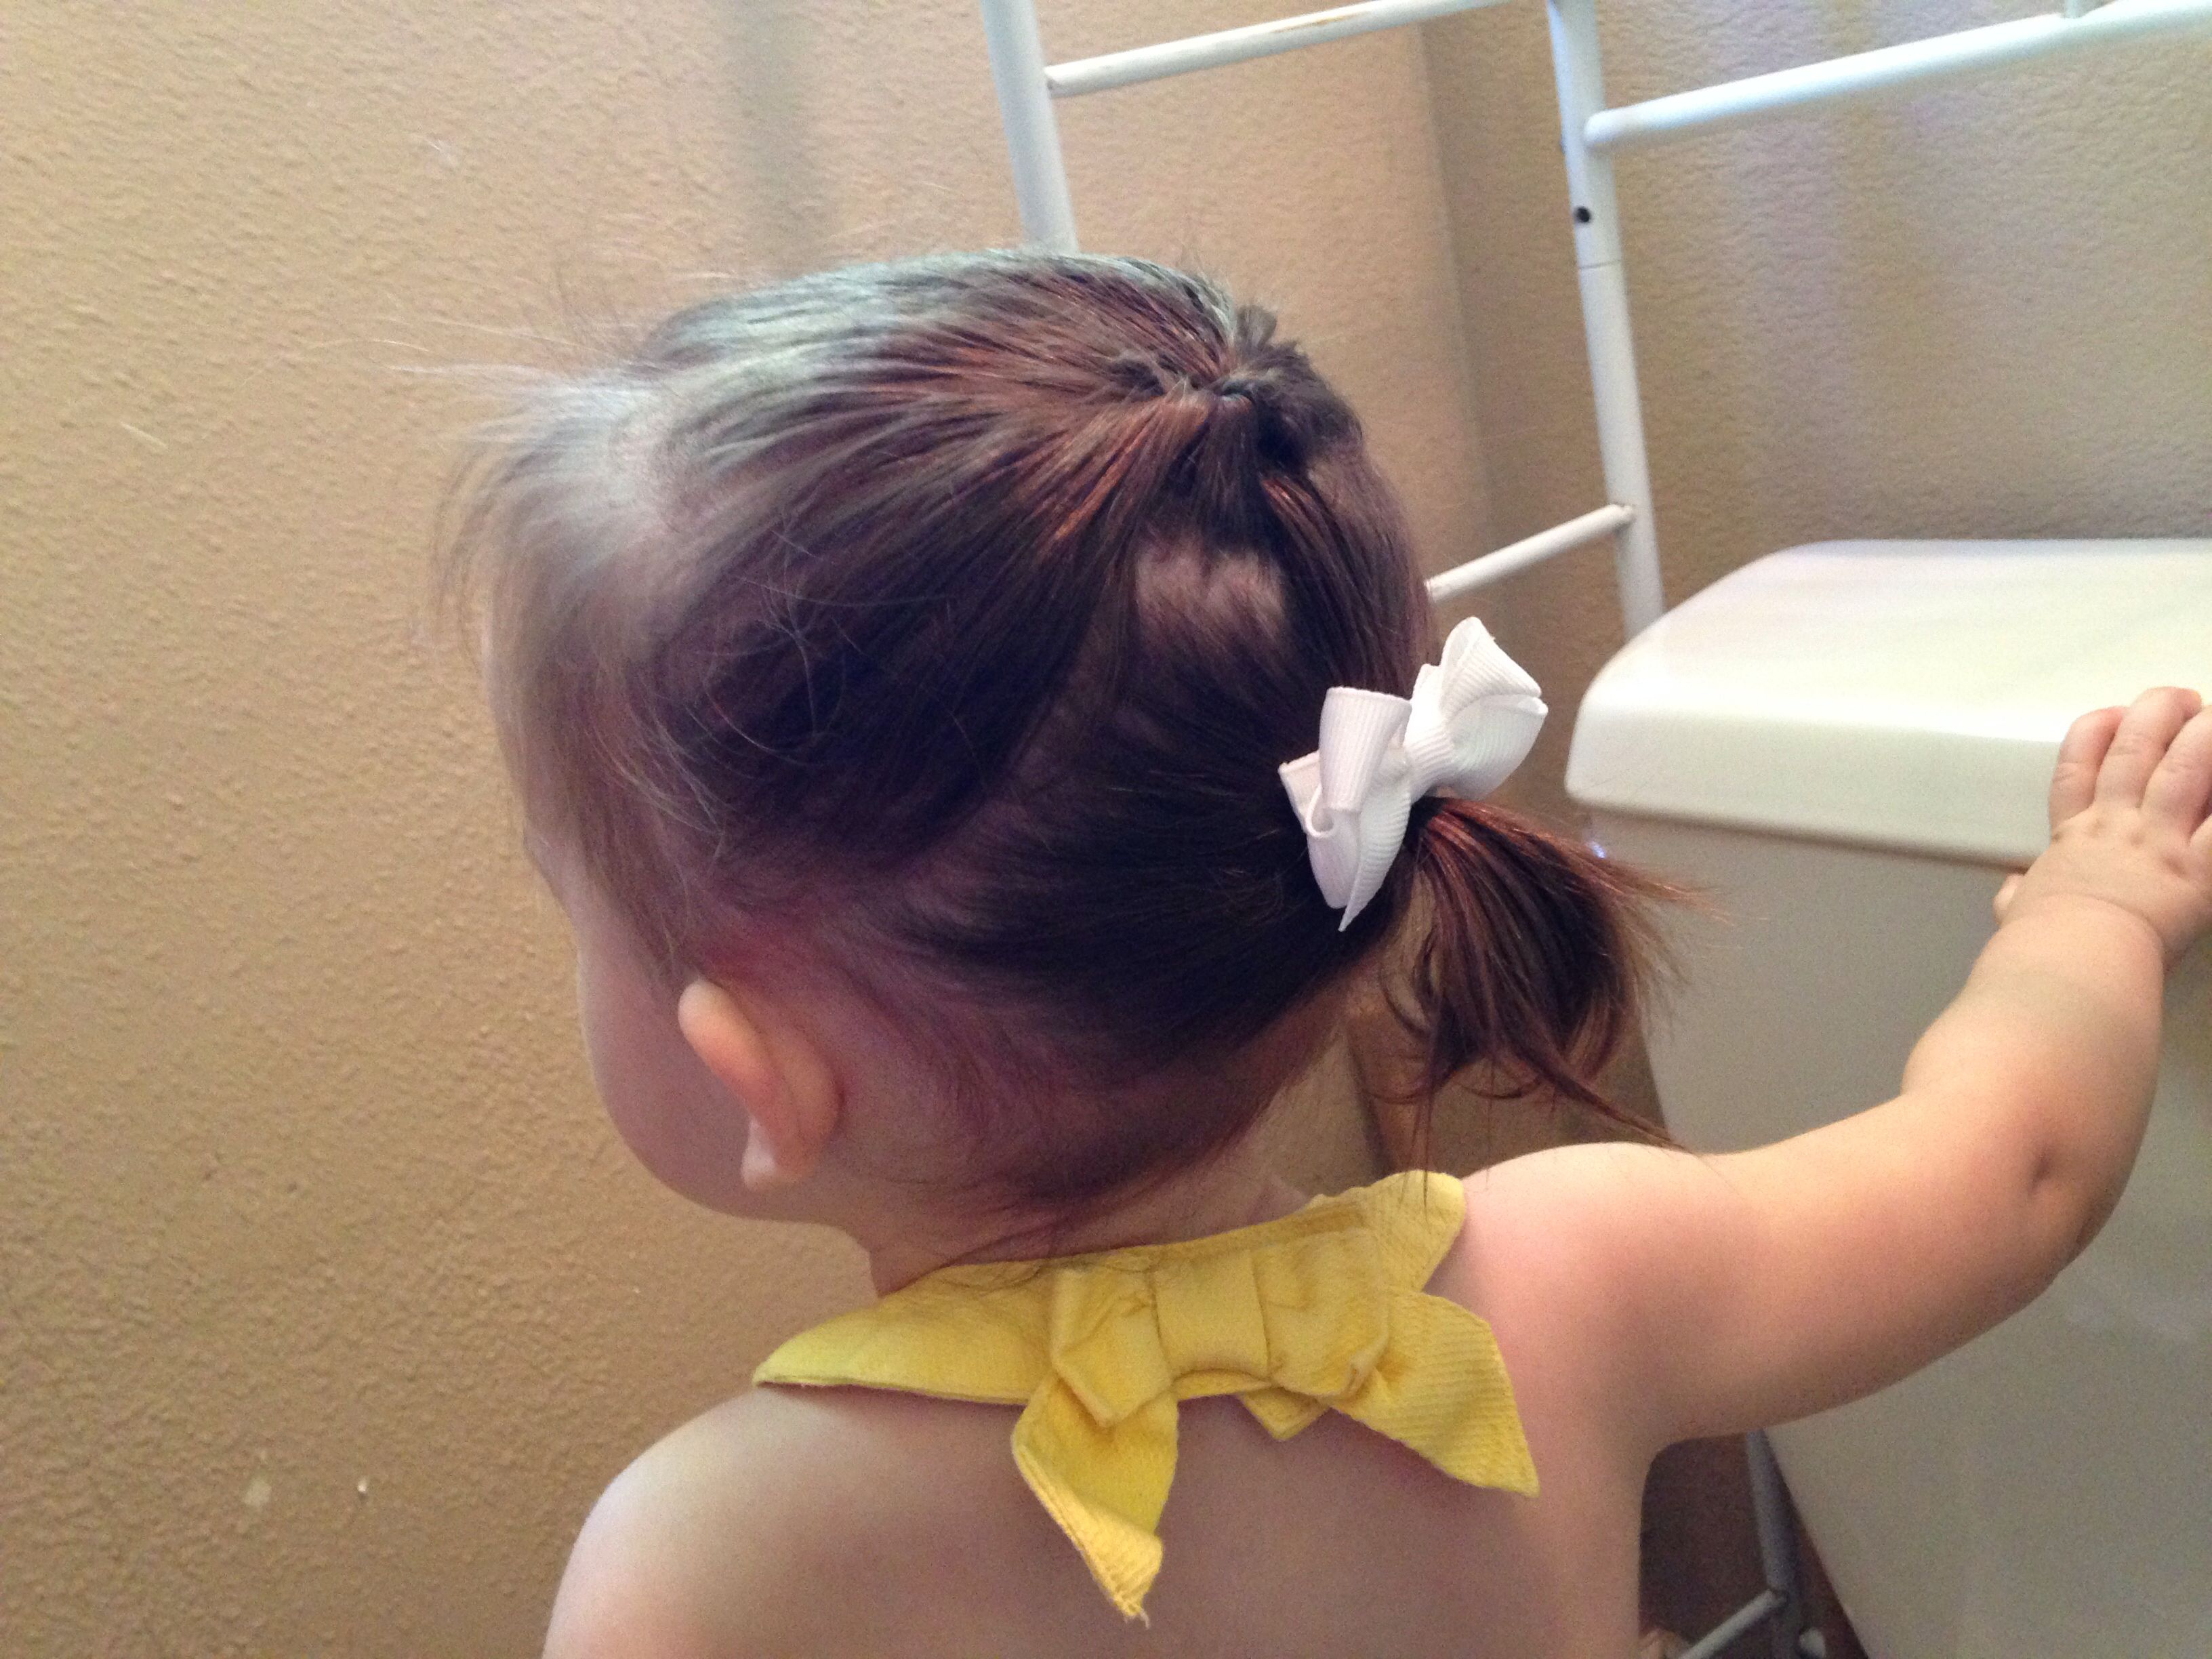 Toddler hair style easy and quick hairstyle for a toddler girl